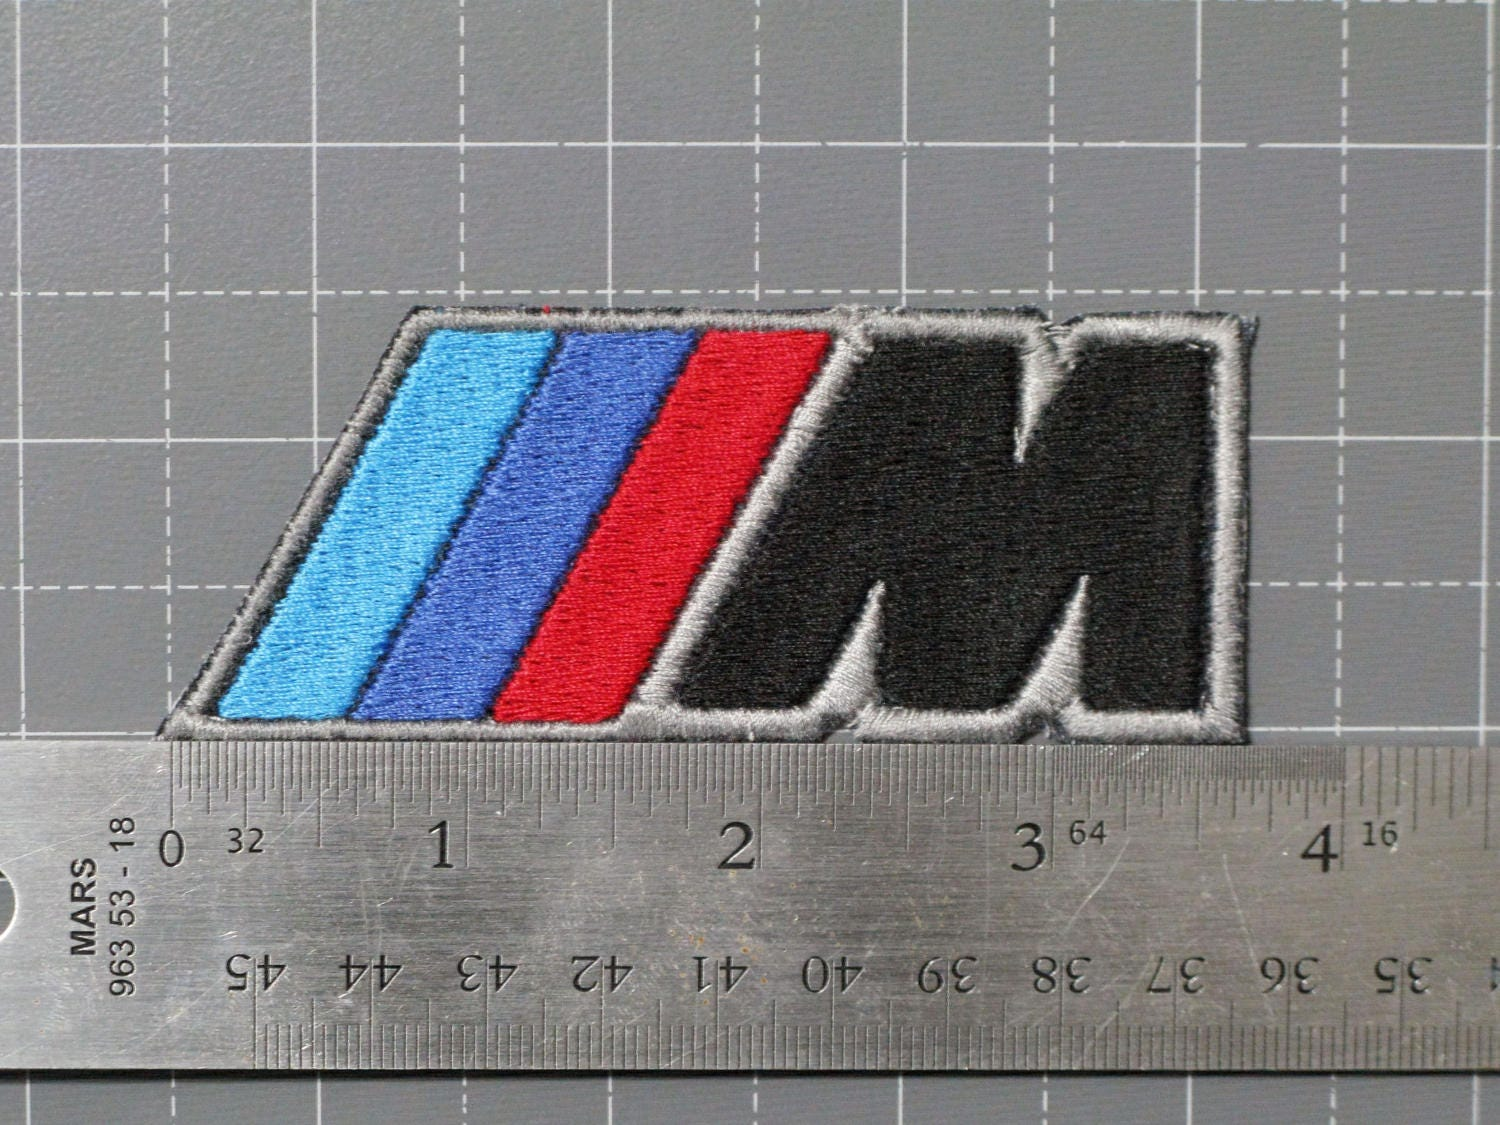 BMW M Logo Emblem Ensignia Black Letter on Black Textile Car Motorcycle  Racing Biker Patch Patches Embroidery - Made in USA